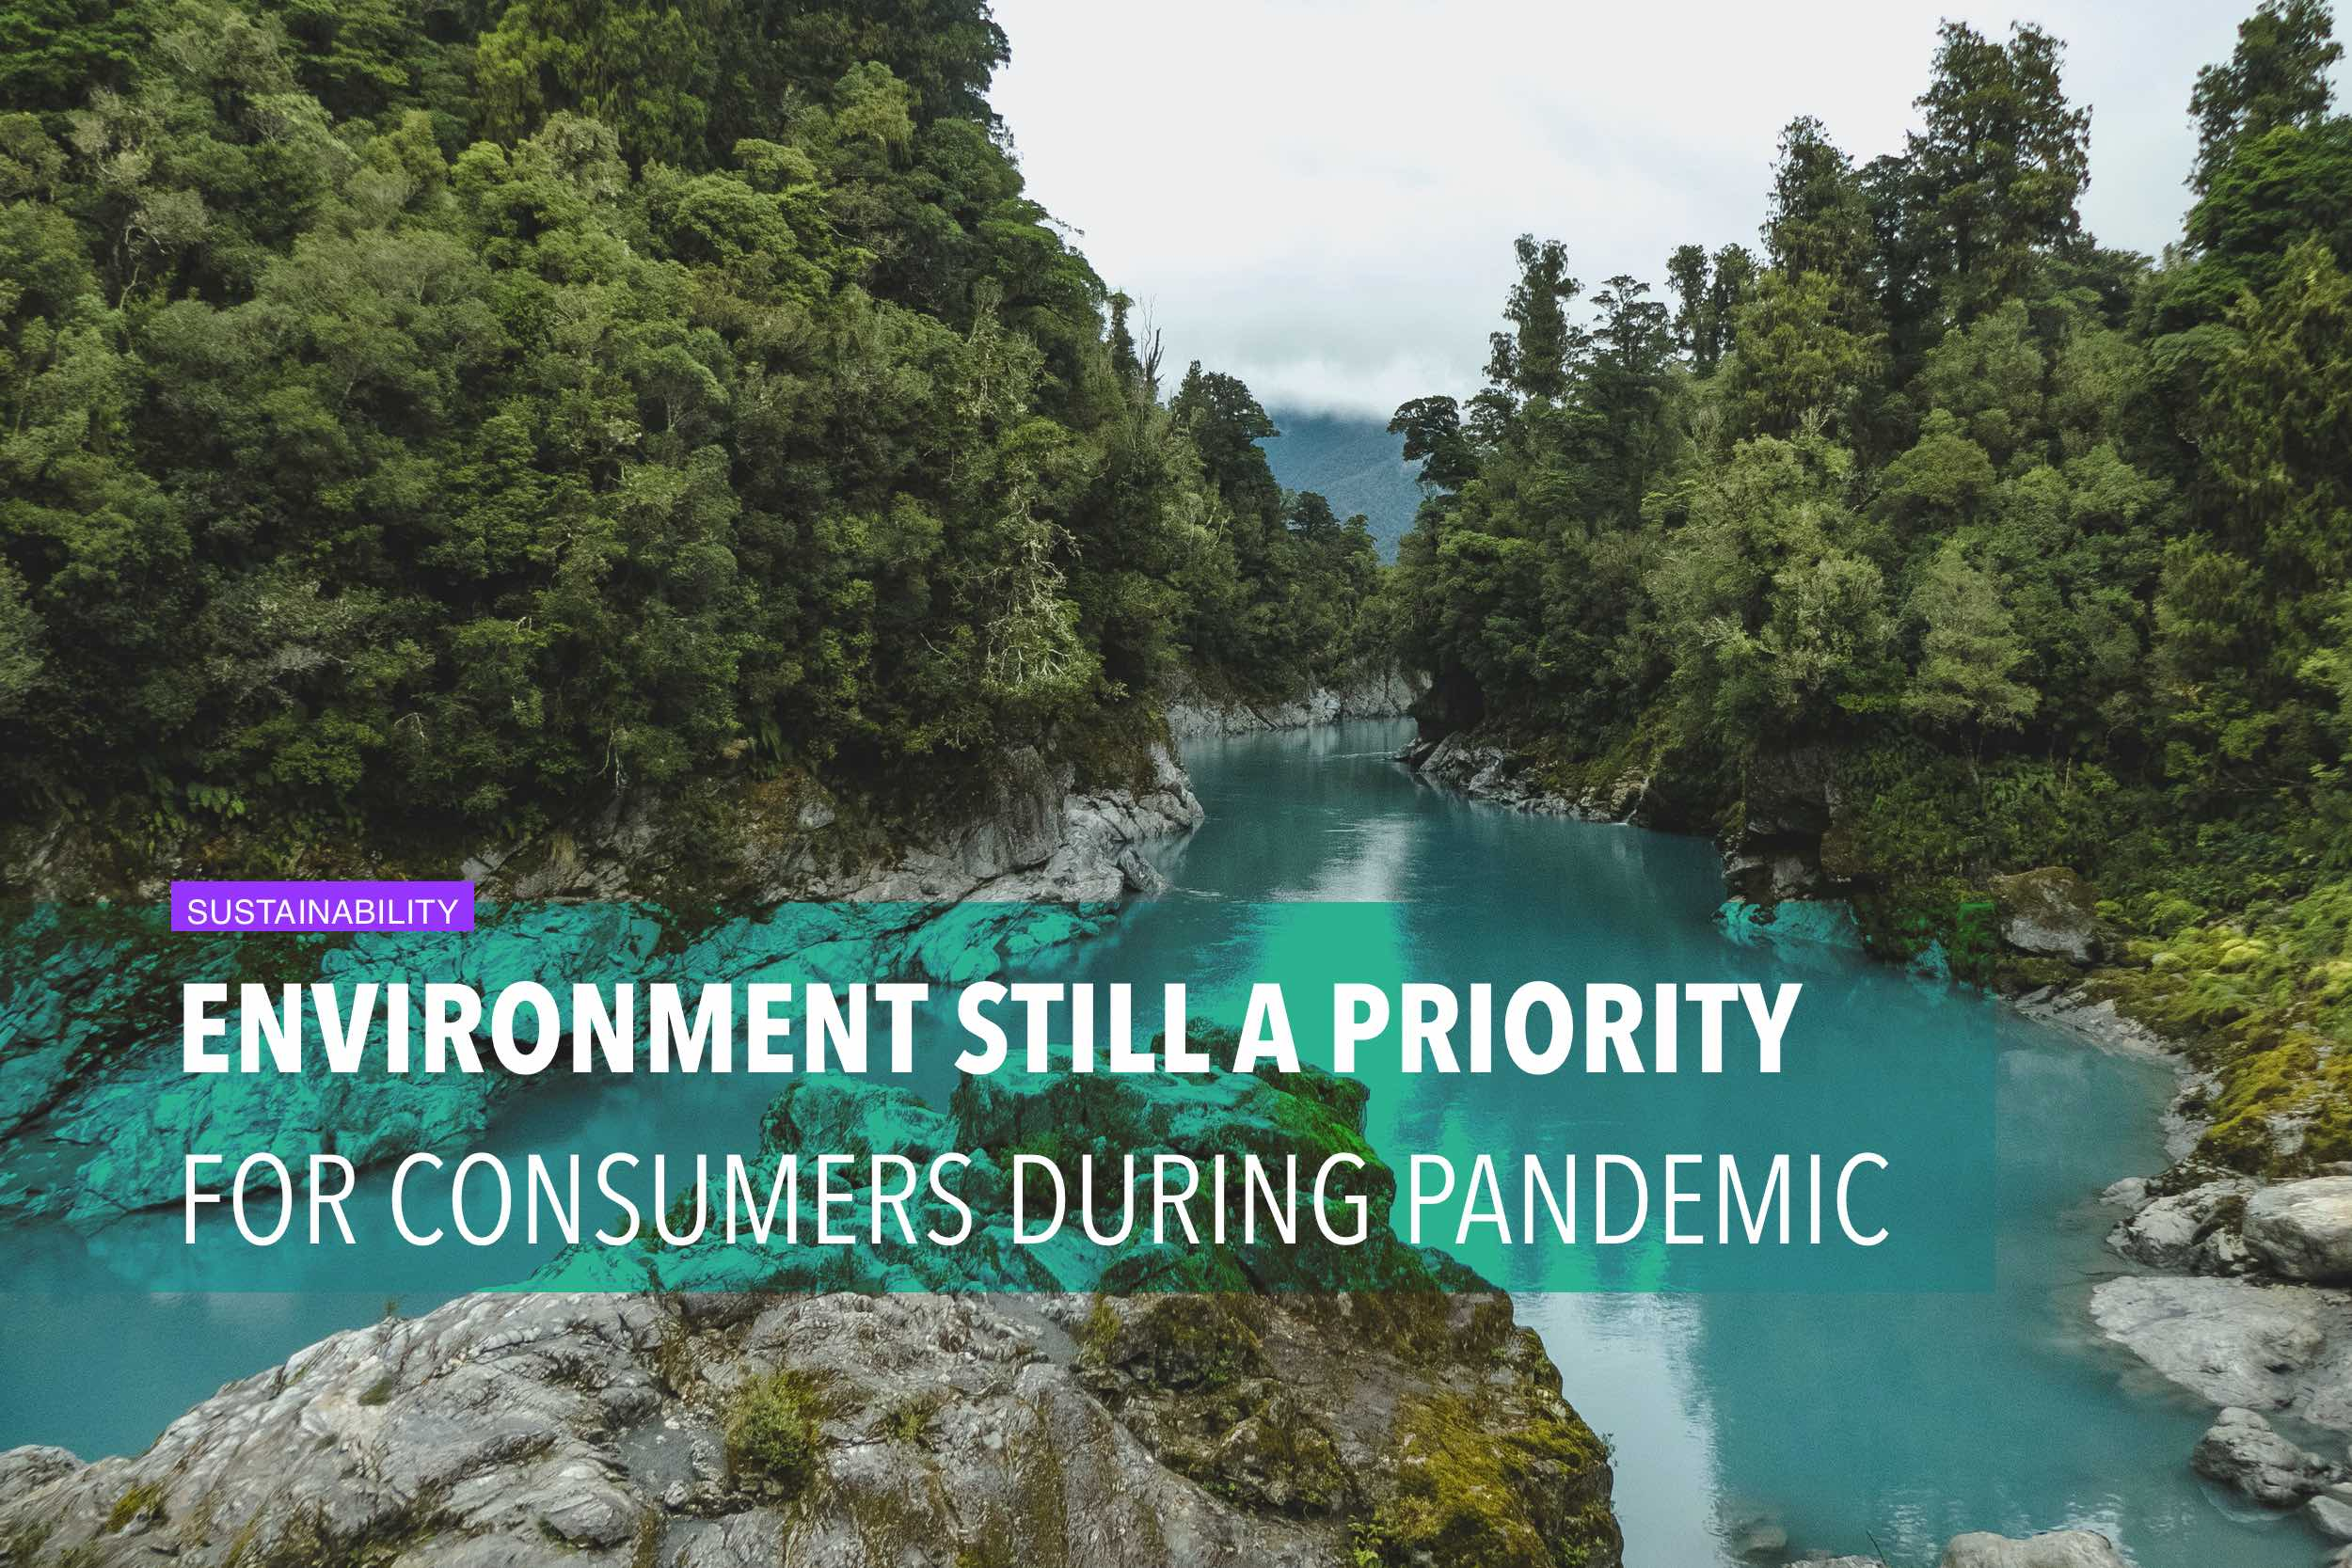 Environment still a priority for online consumers during pandemic